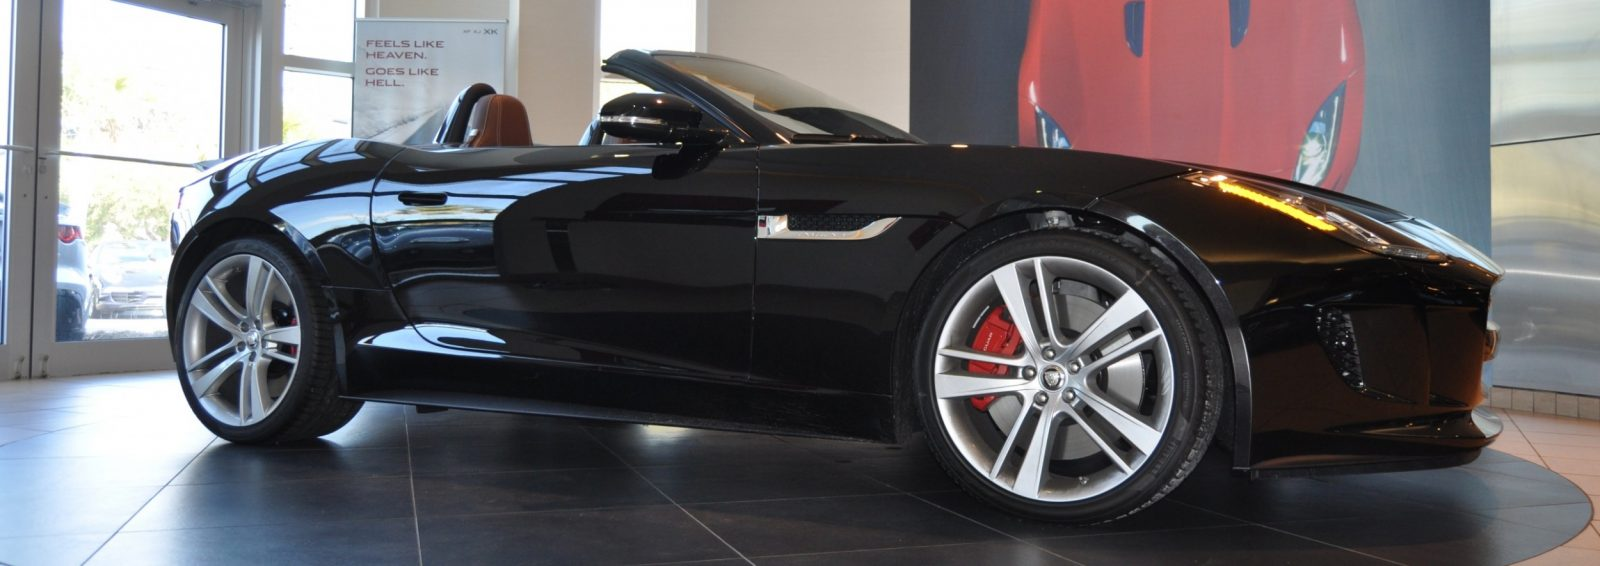 2014 Jaguar F-type S Cabrio - LED Lighting Demo and 60 High-Res Photos21